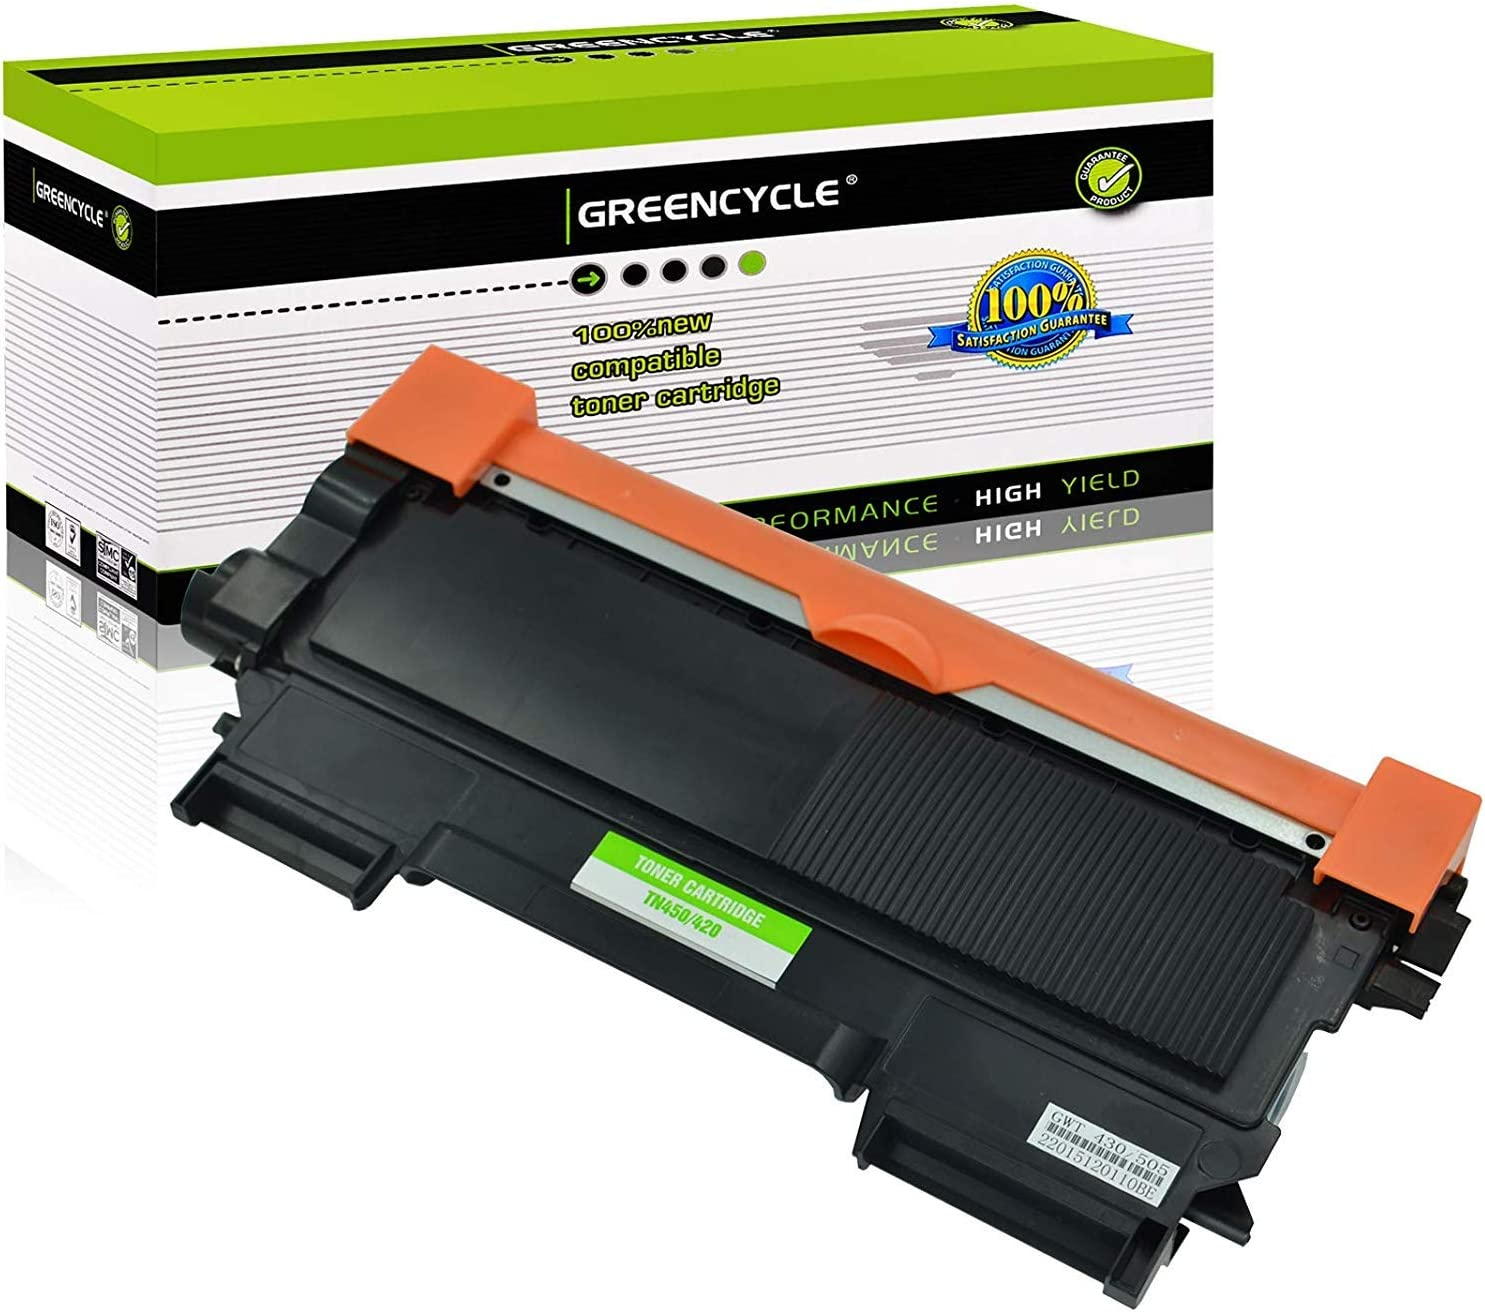 US Stock 10PK TN450 TN420 Toner Cartridge For Brother DCP-7060 D DCP-7065